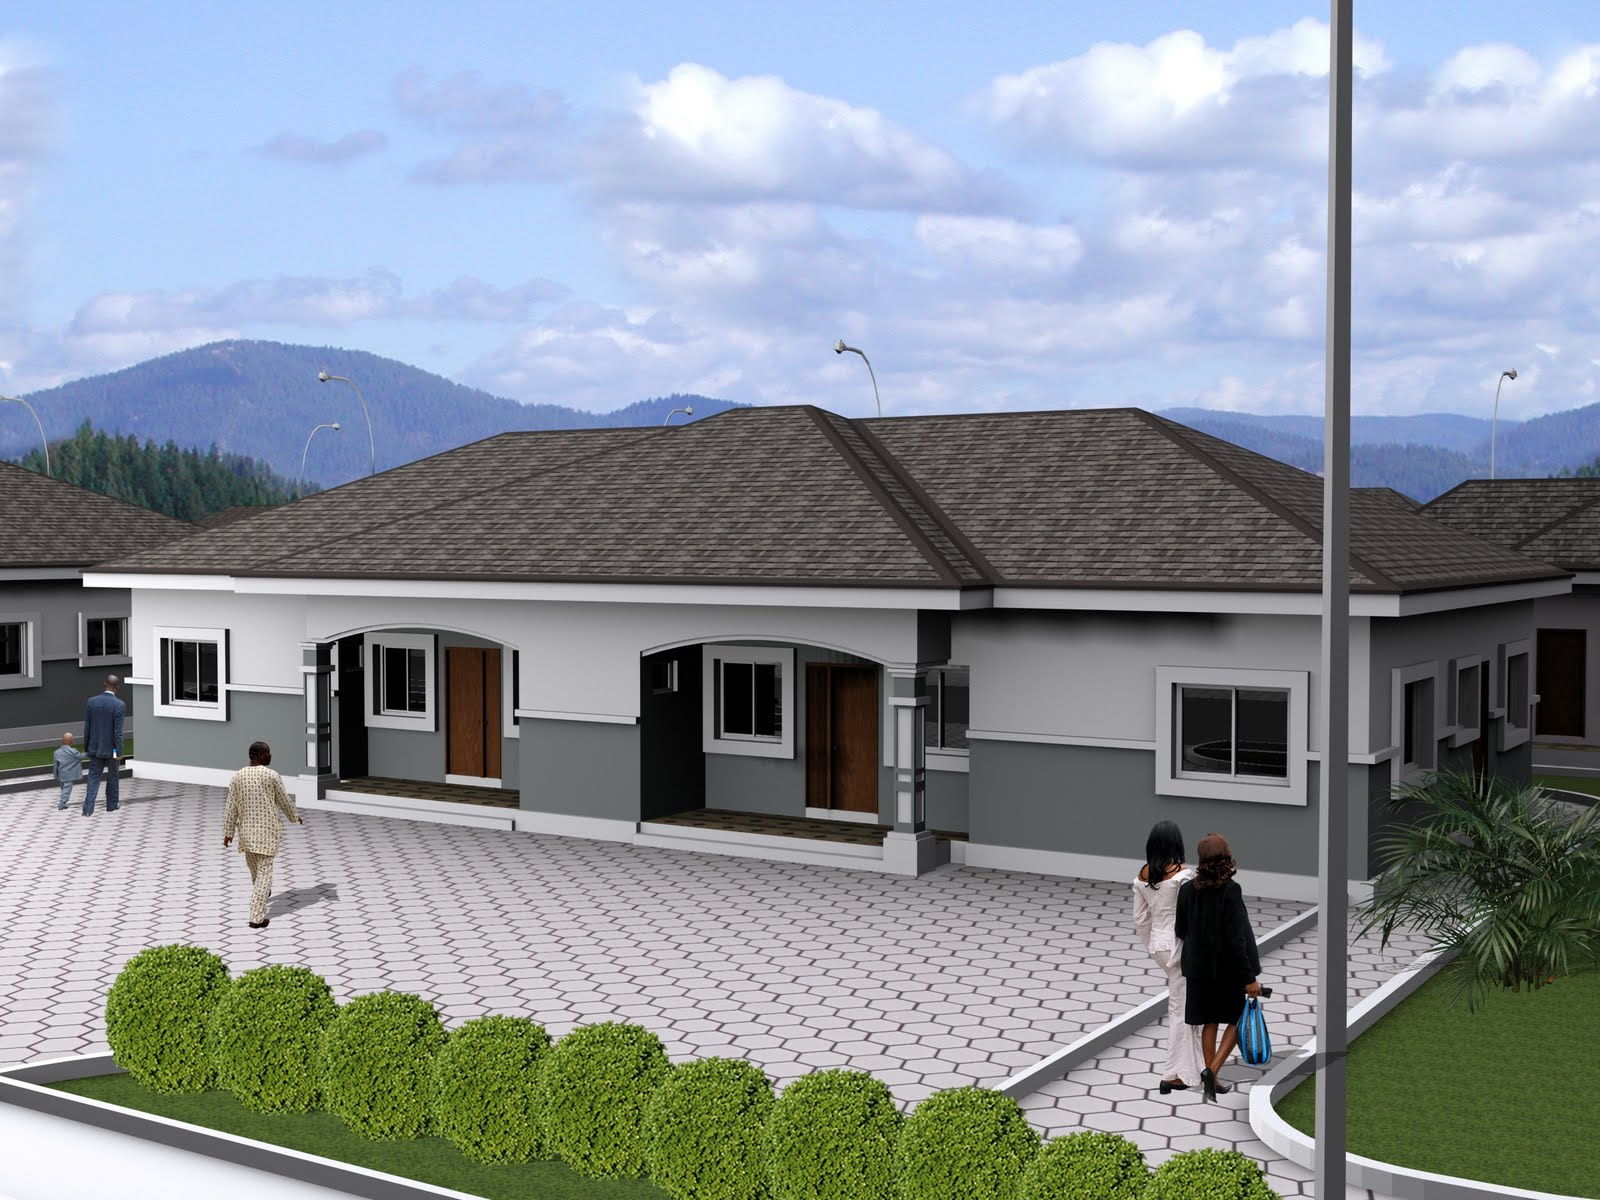 Best bungalow in nigeria joy studio design gallery Bungalo house